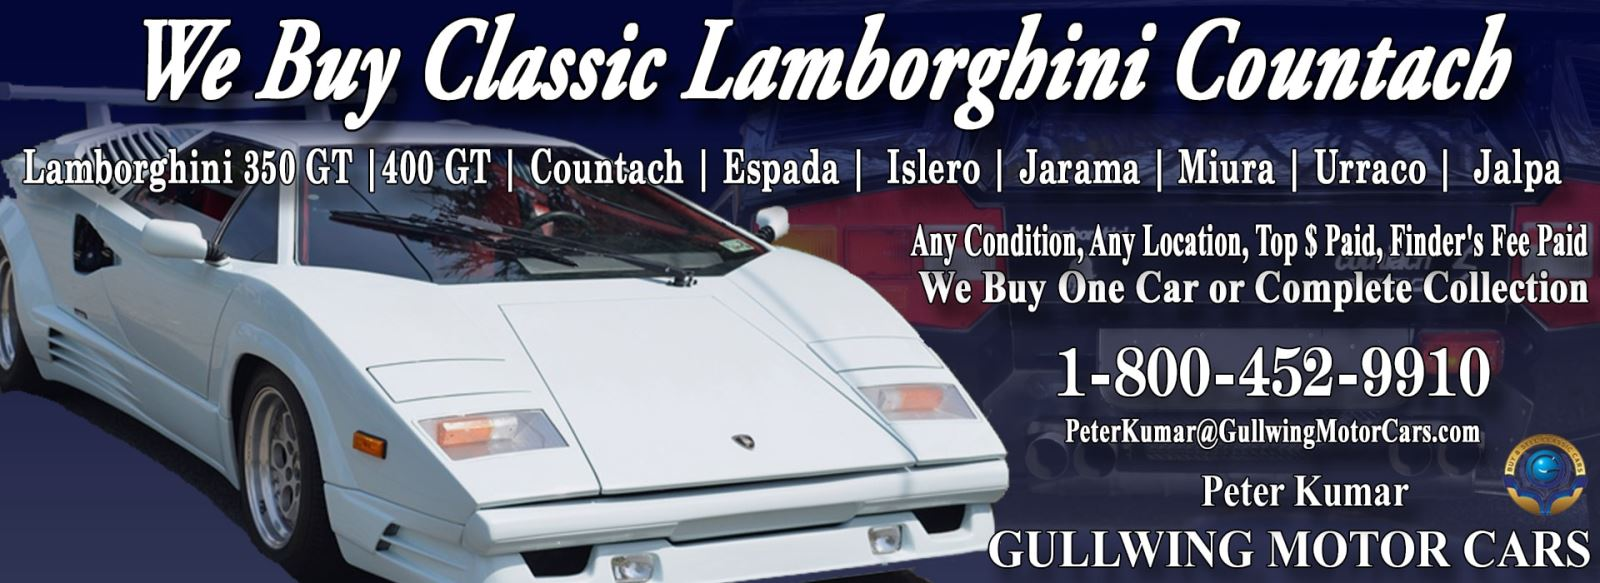 Classic Lamborghini Countach for sale, we buy vintage Lamborghini Countach. Call Peter Kumar. Gullwing Motor